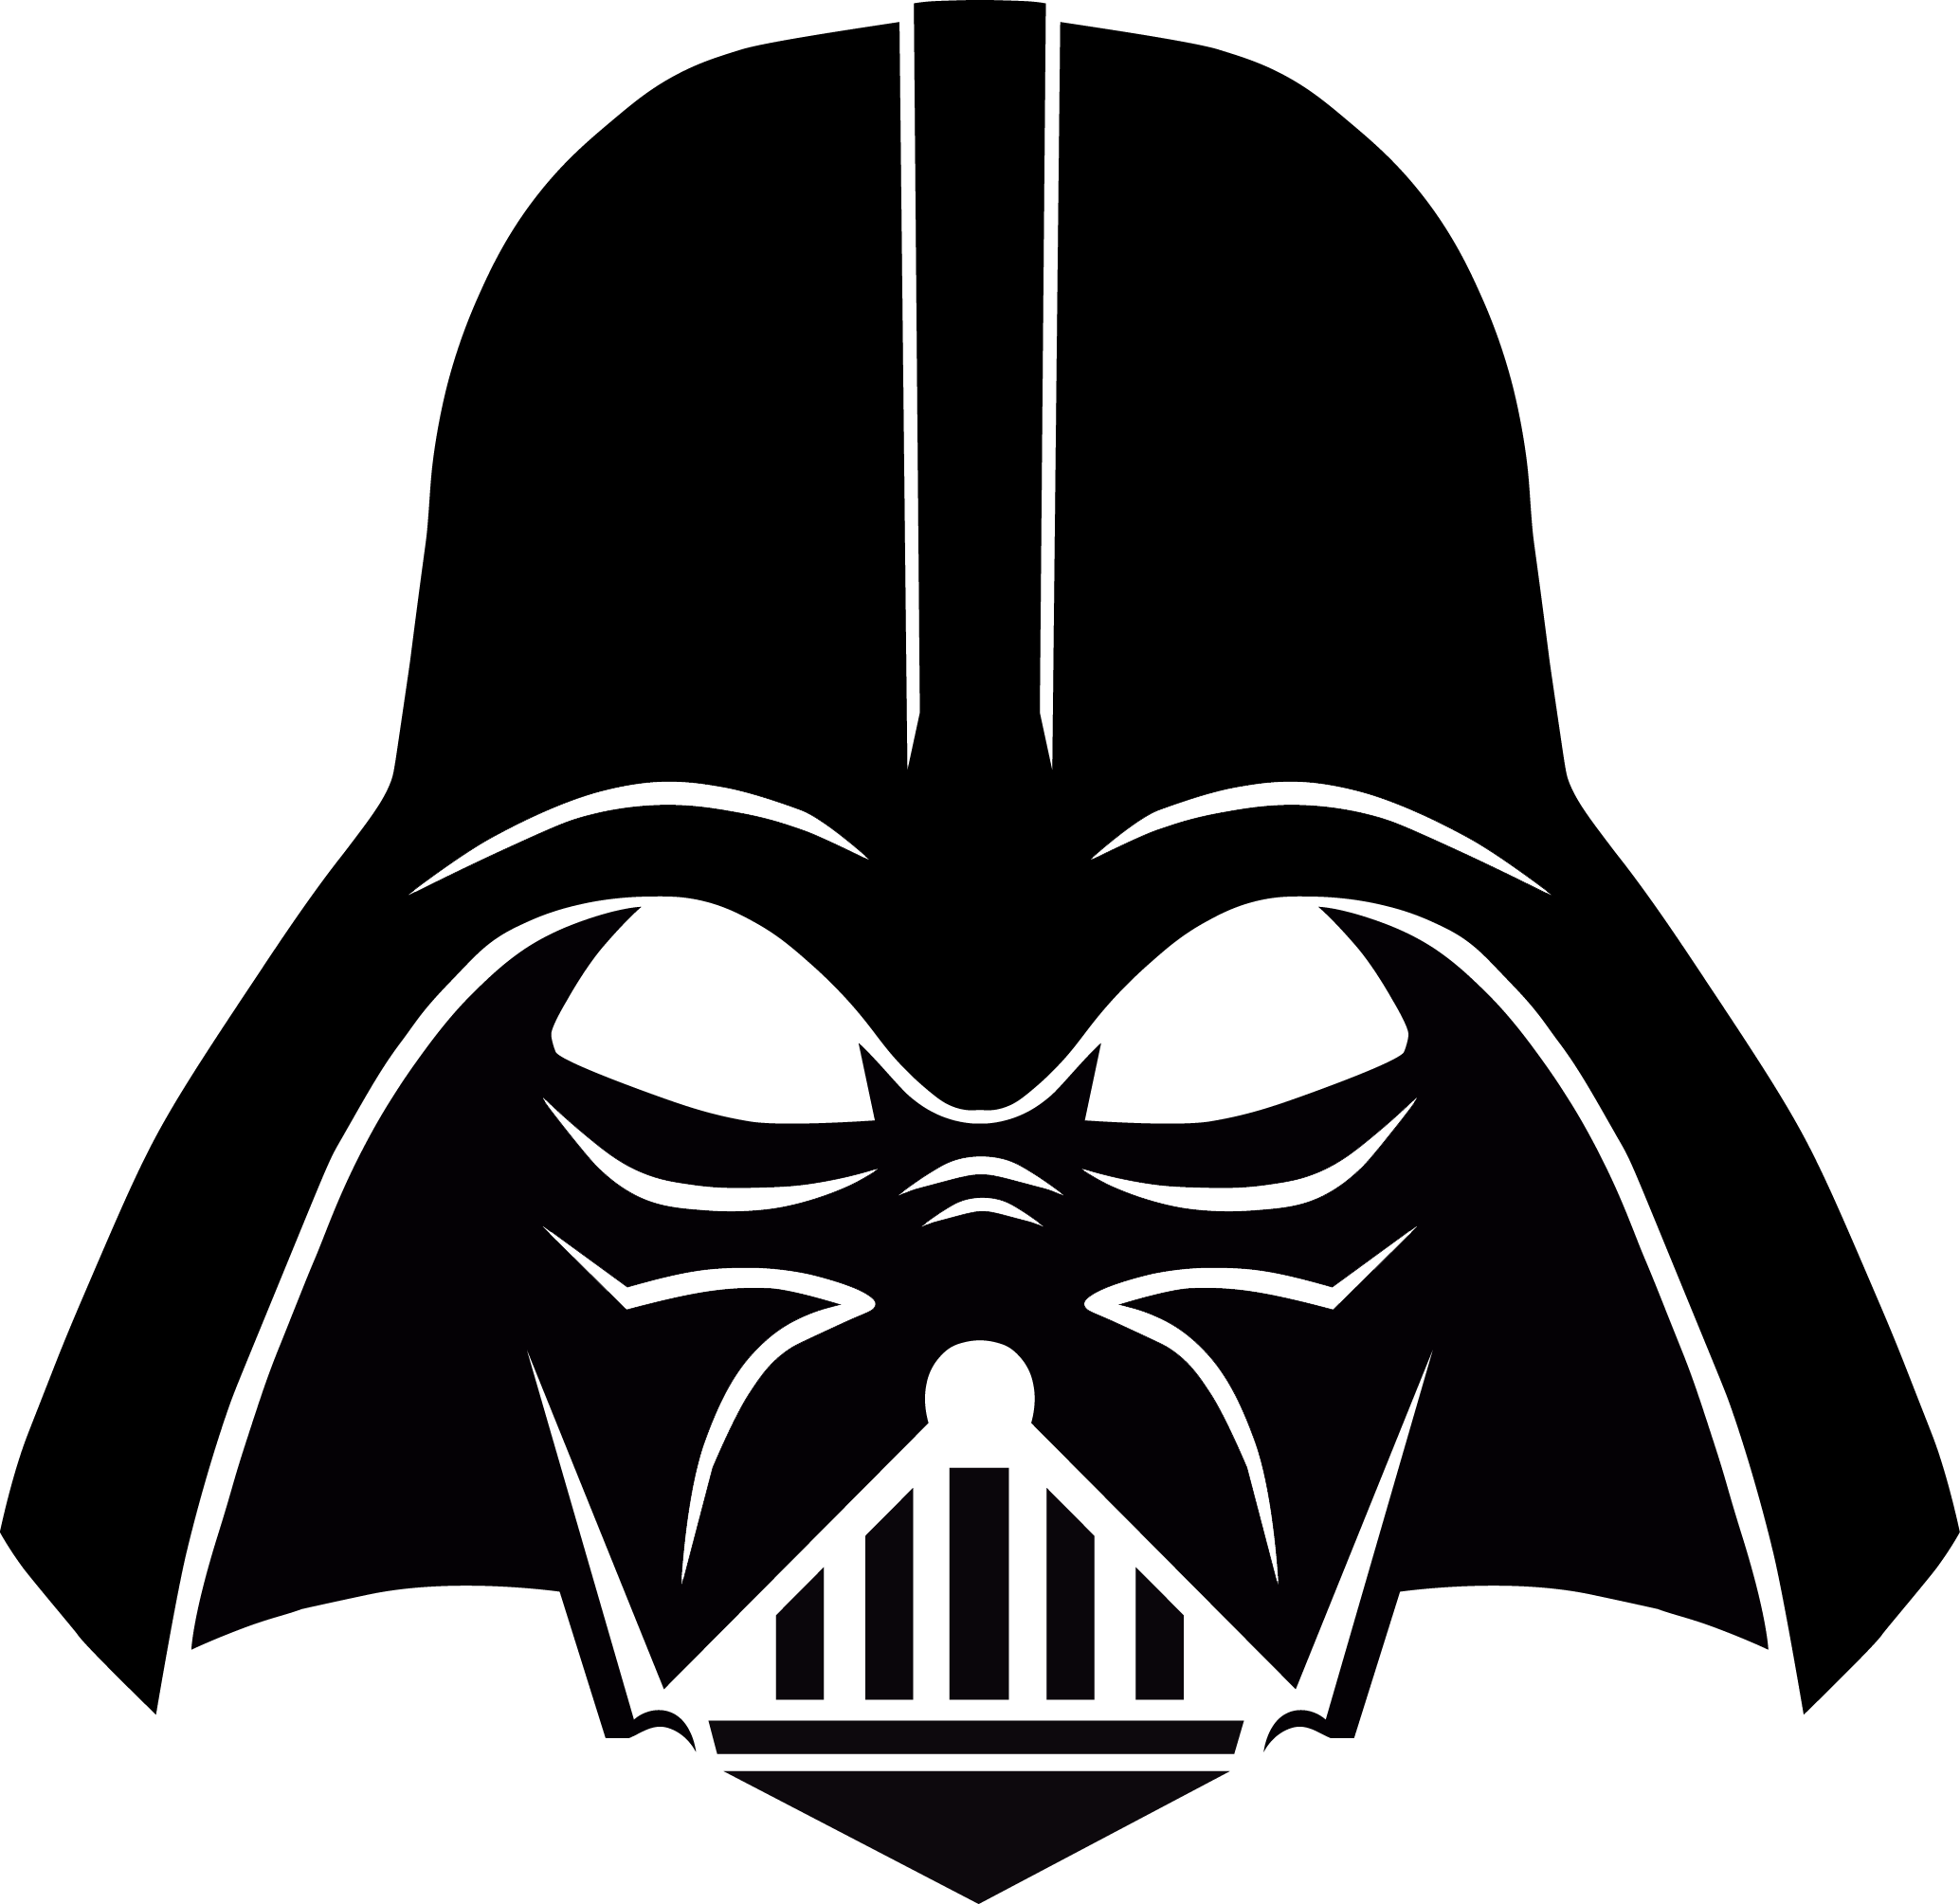 Darth vader stencil free download desenhos cartoon - Pochoir star wars ...